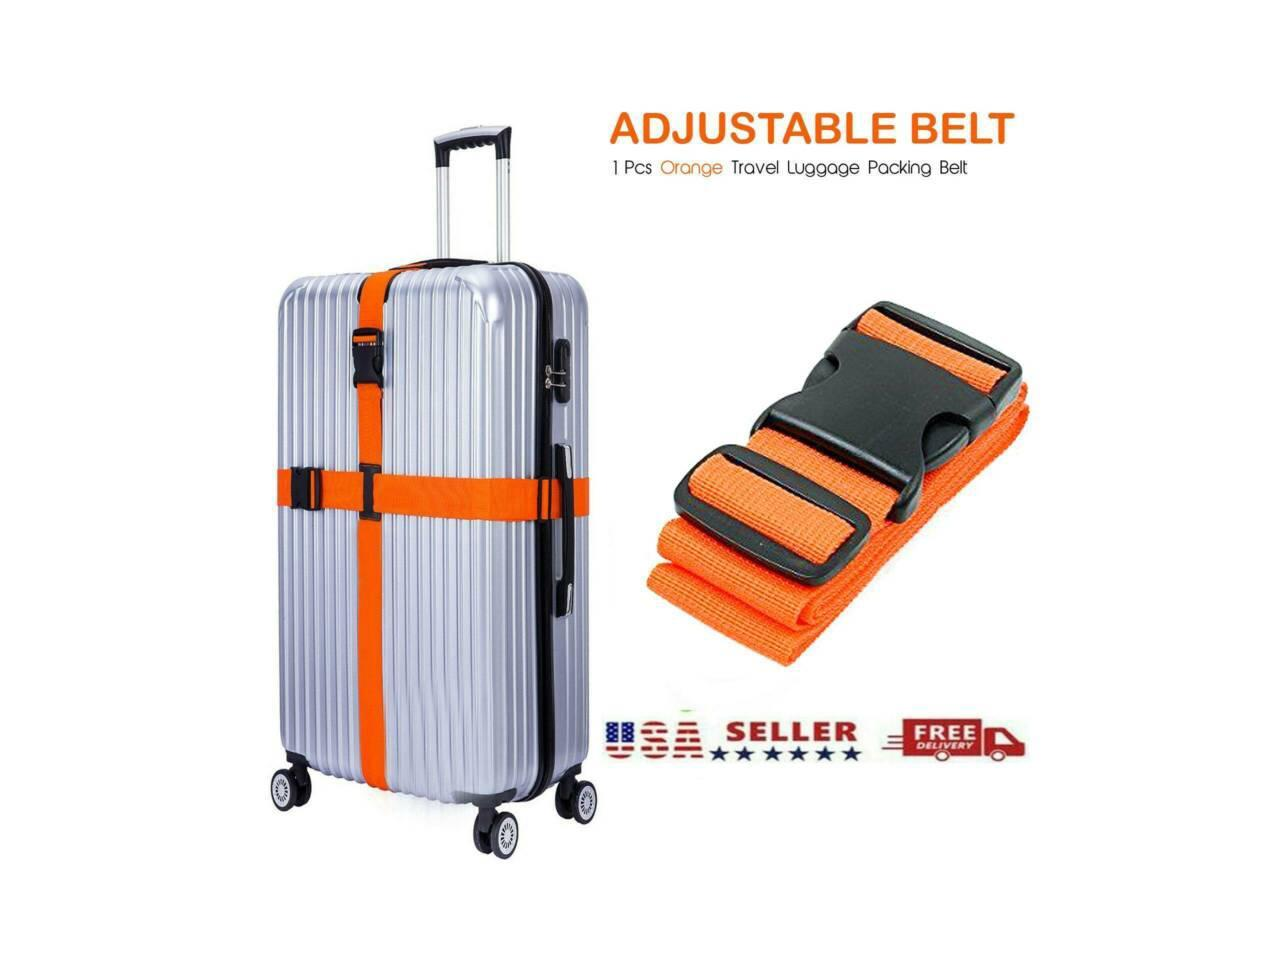 Non-Slip Travel Luggage Straps Buckle Packing Portable Adjustable Suitcase Belts Black Utility Strap with Quick-Release Buckle Travel Bag Accessories CALIDAKA 4pcs Strap Buckle Packing